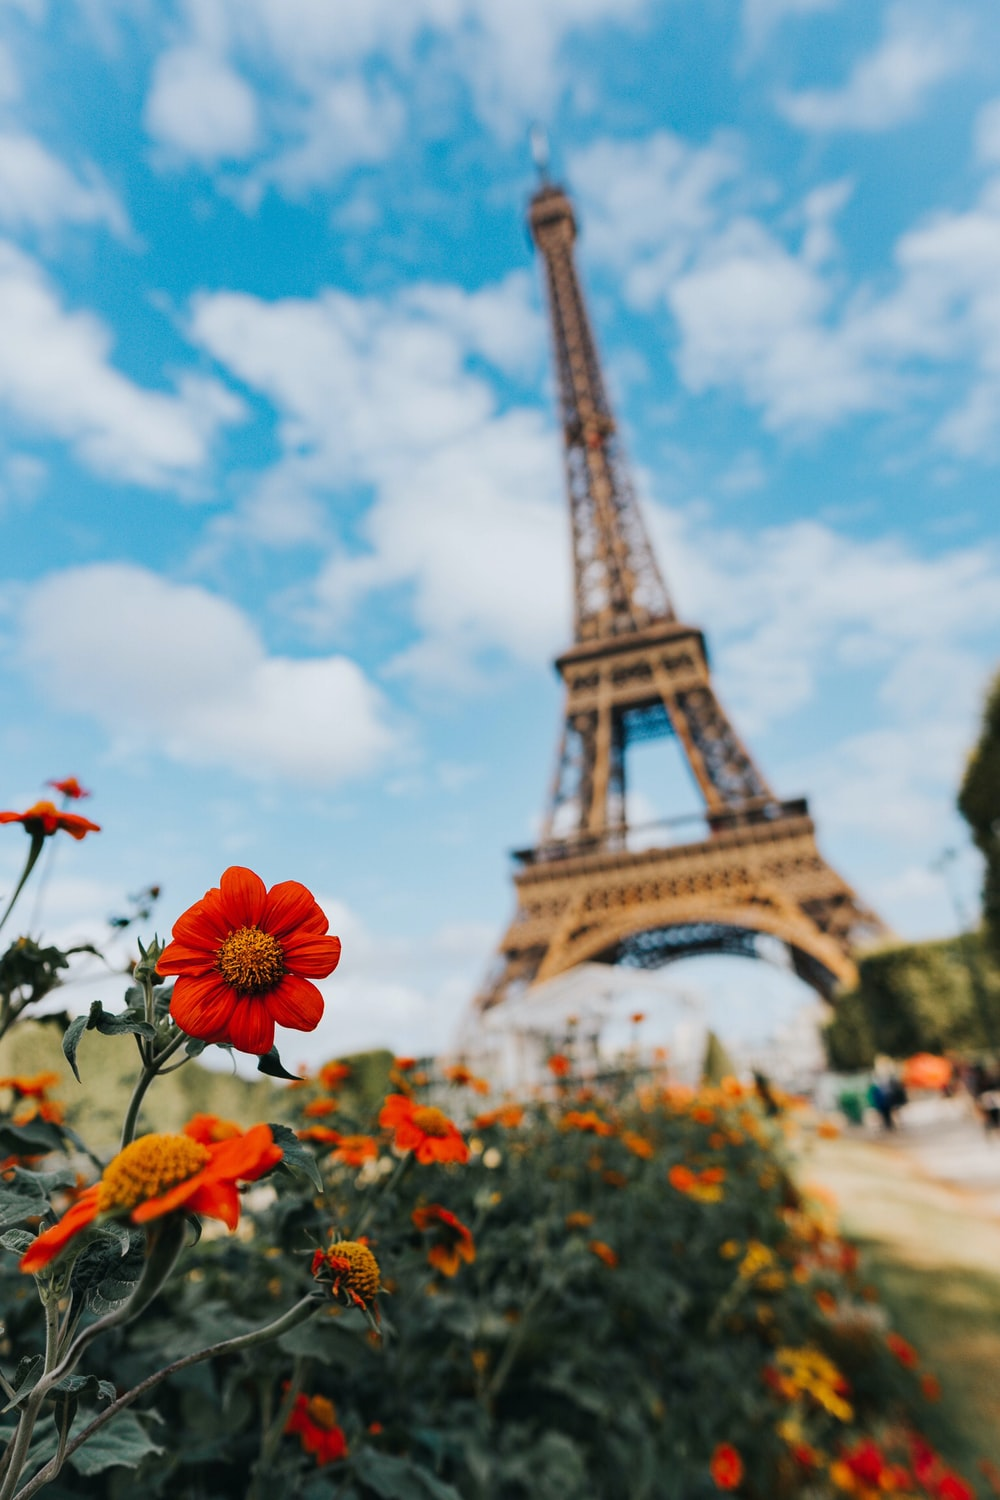 garden of flower near Eiffel Tower